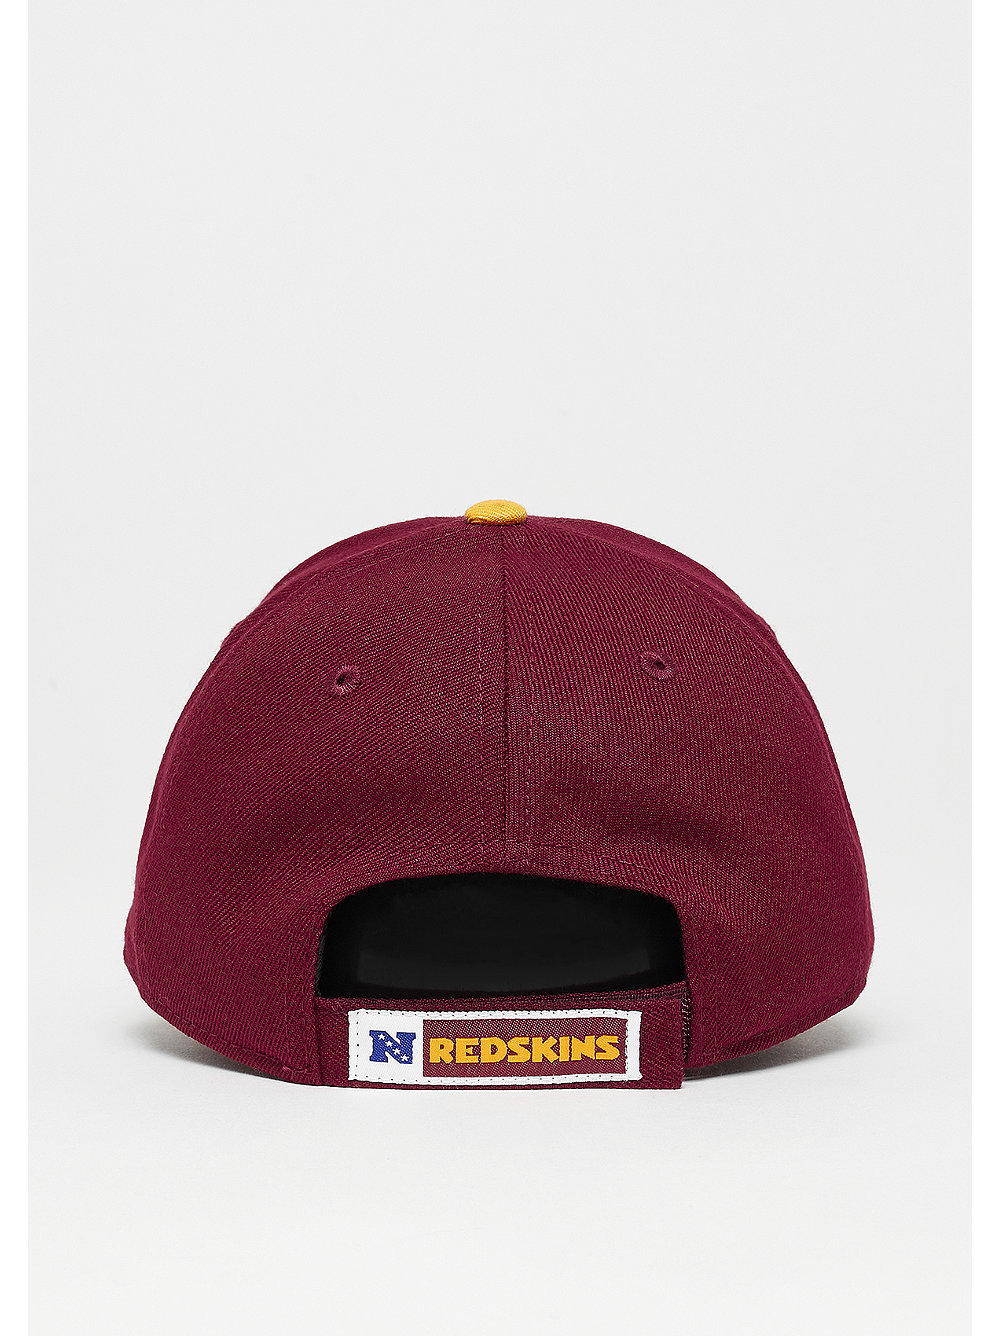 Compra New Era NFL Washington Redskins burgundy yellow Gorras de Baseball  en SNIPES 9d5bc199701